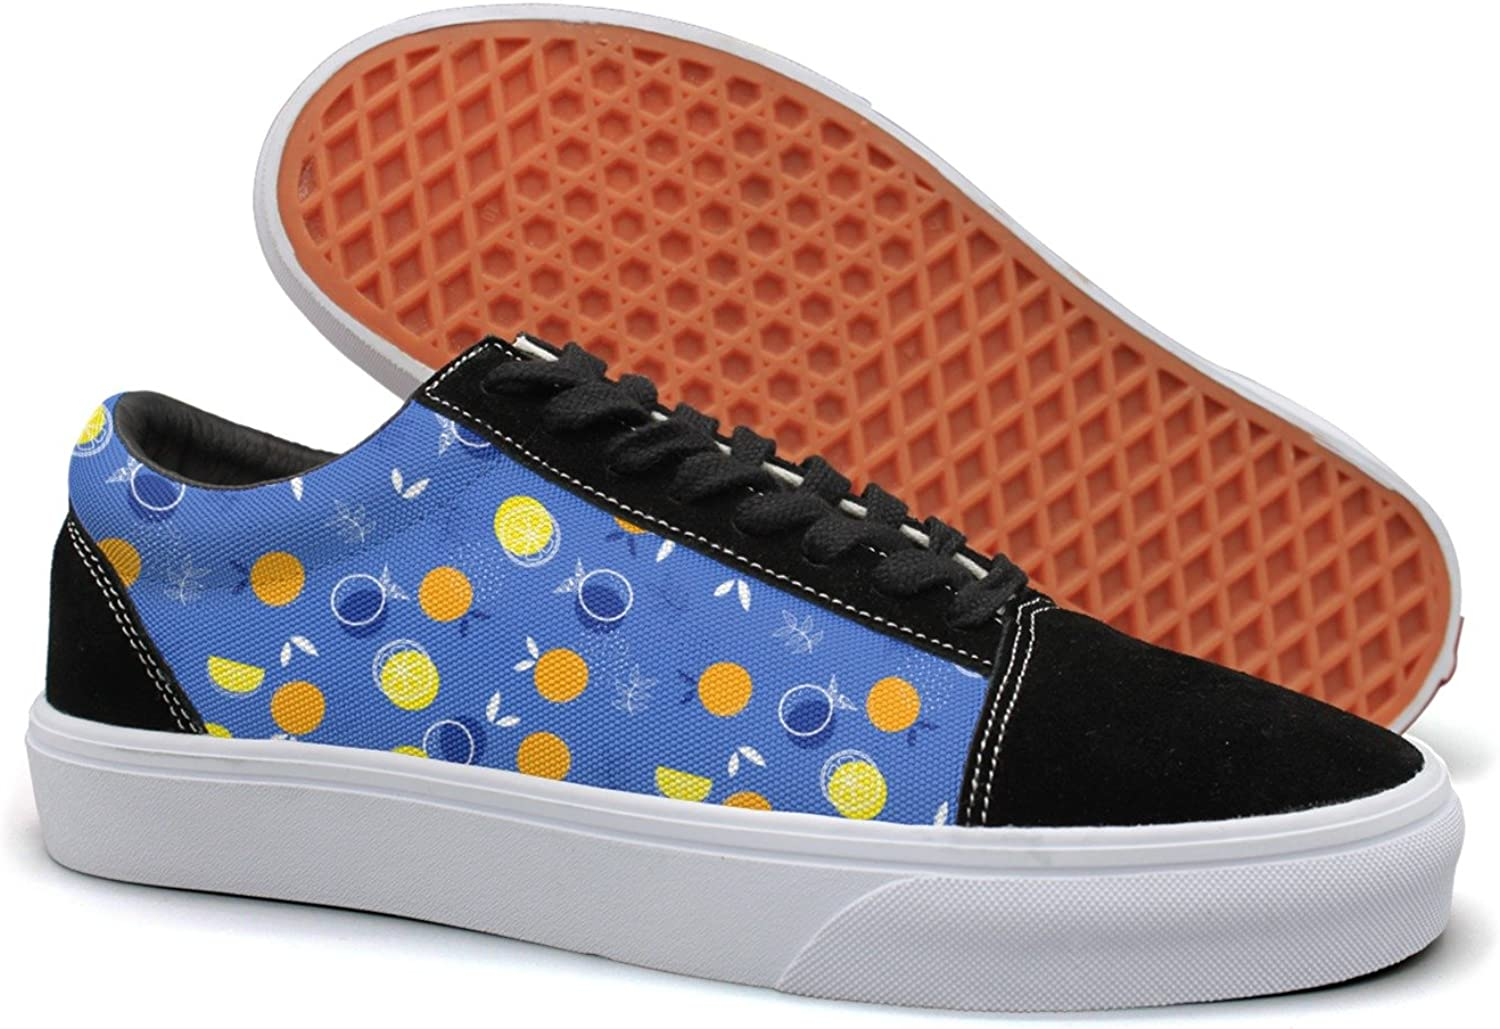 Feenfling Abstract Fruit Lemon Nutrition Womens Casual Suede Canvas Boat shoes Low Top Athletic Sneakers